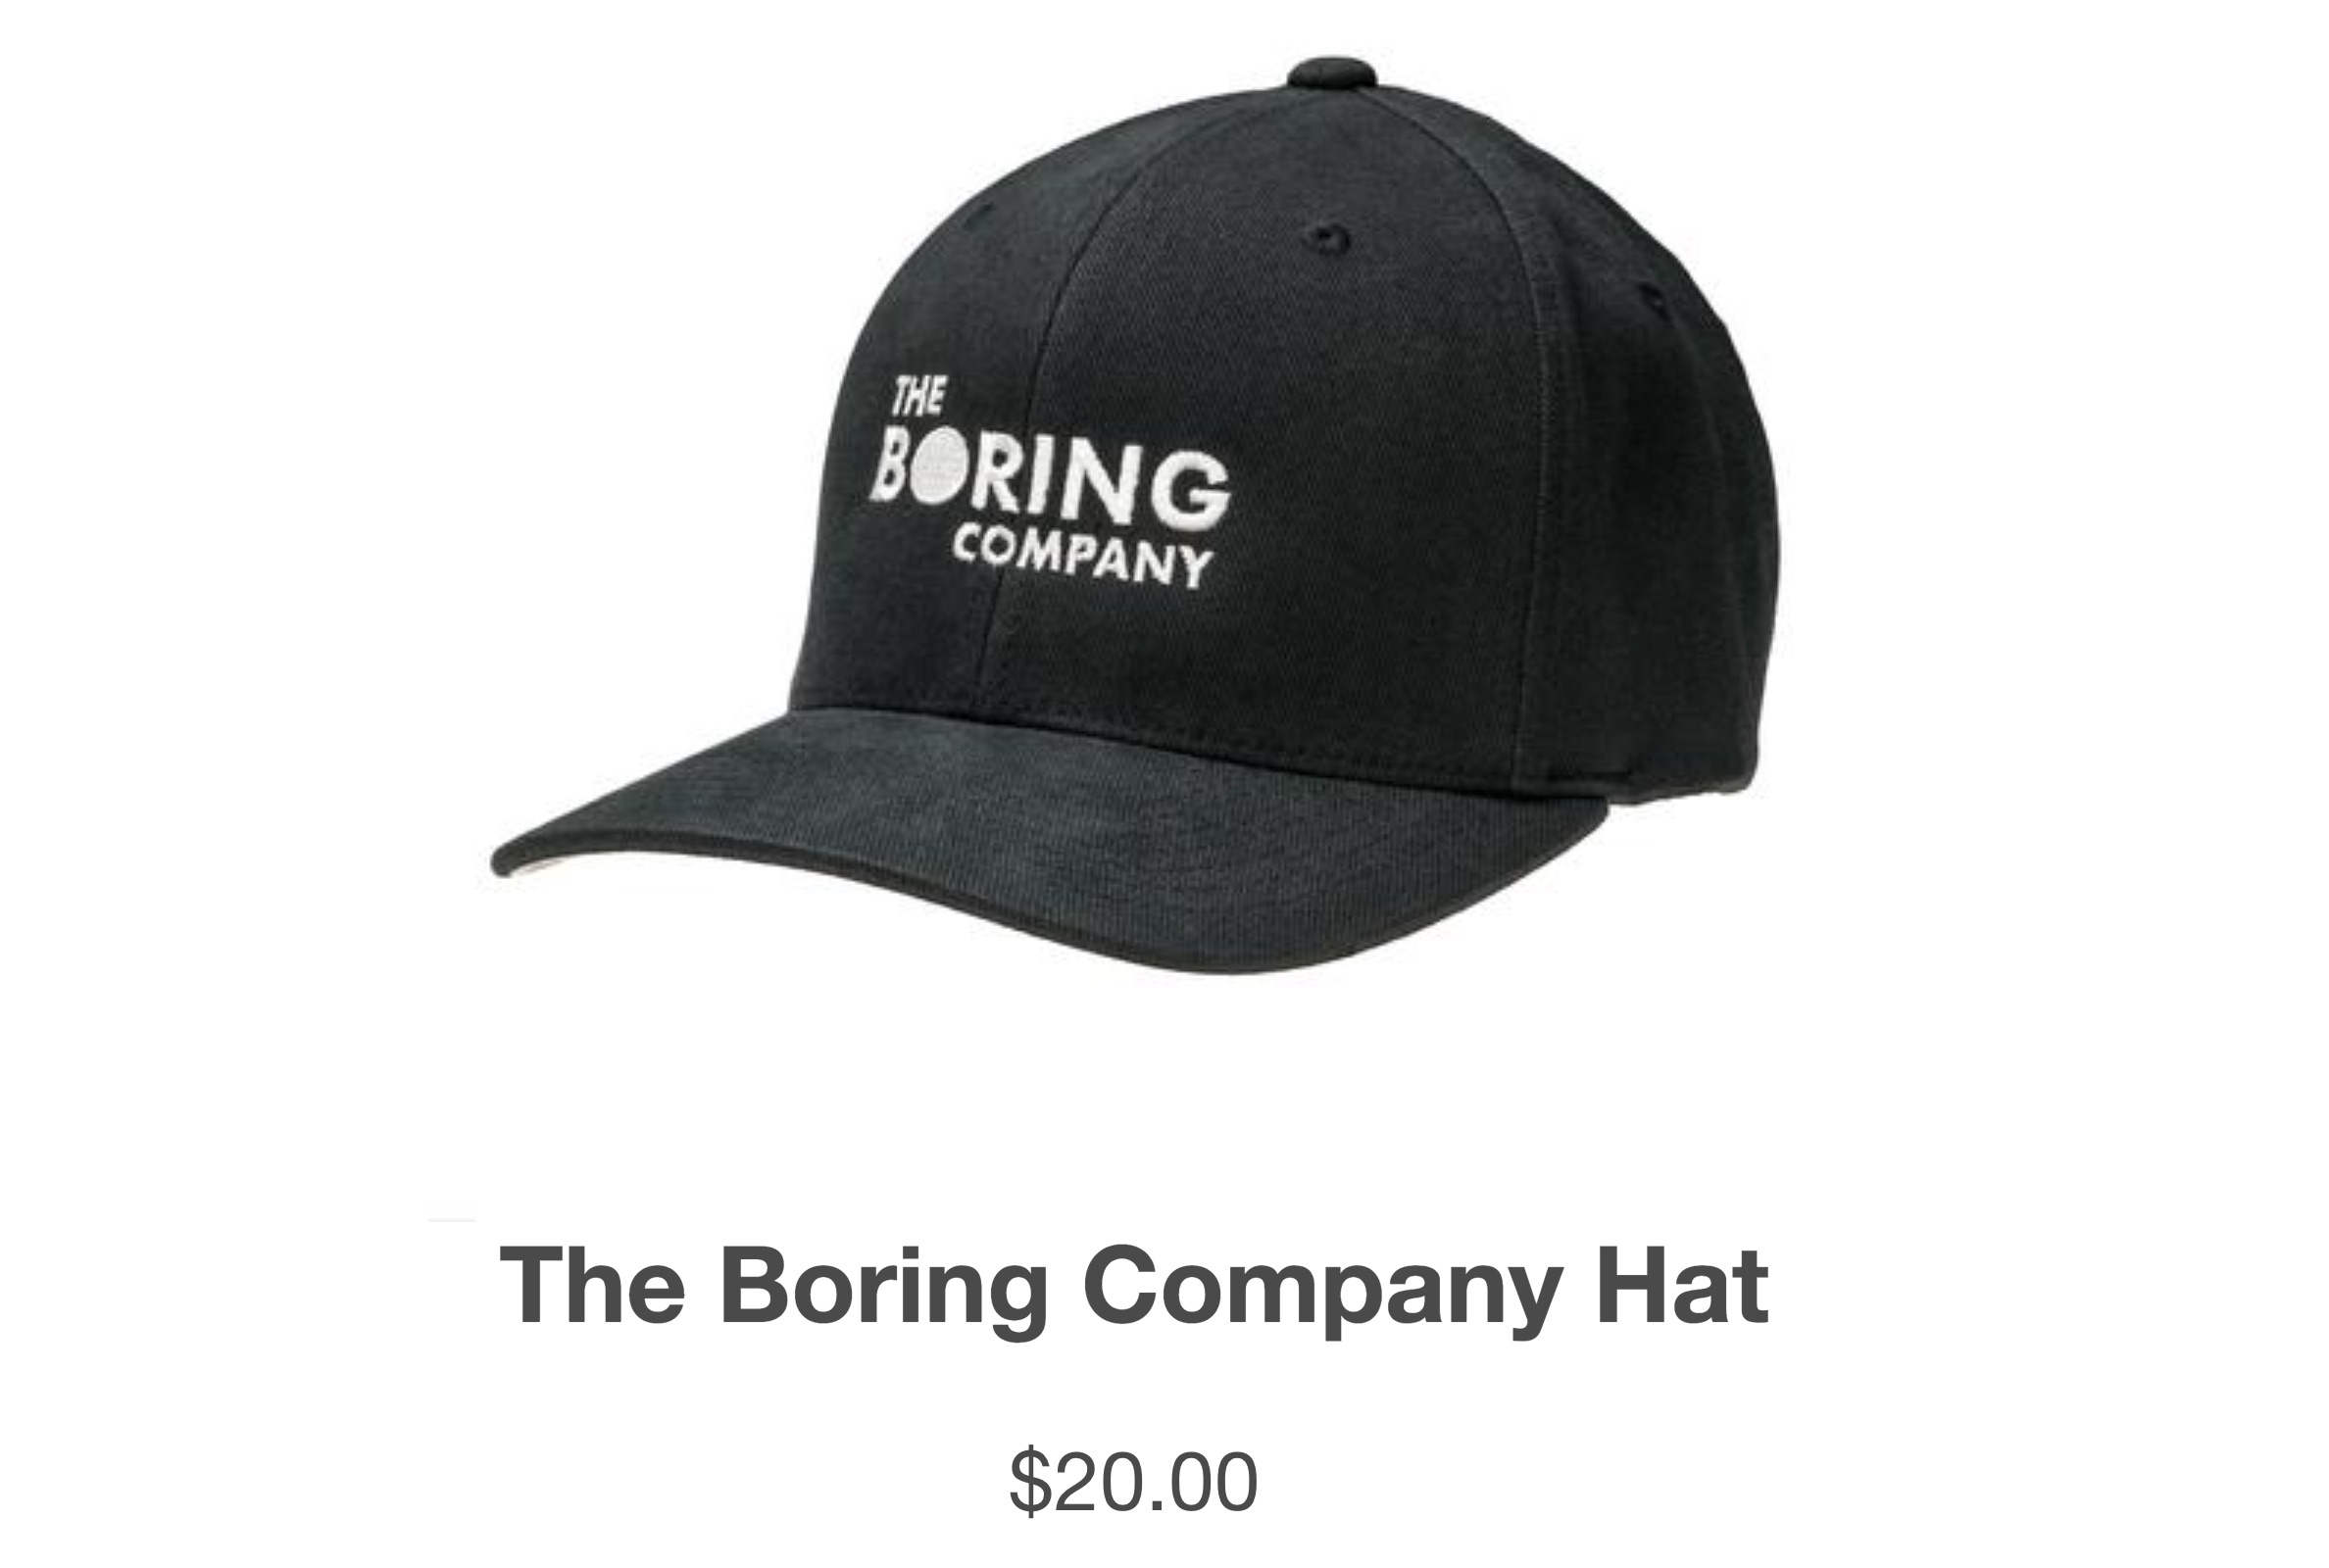 Elon Musk Sold 80k Worth Of The Boring Company Hats In